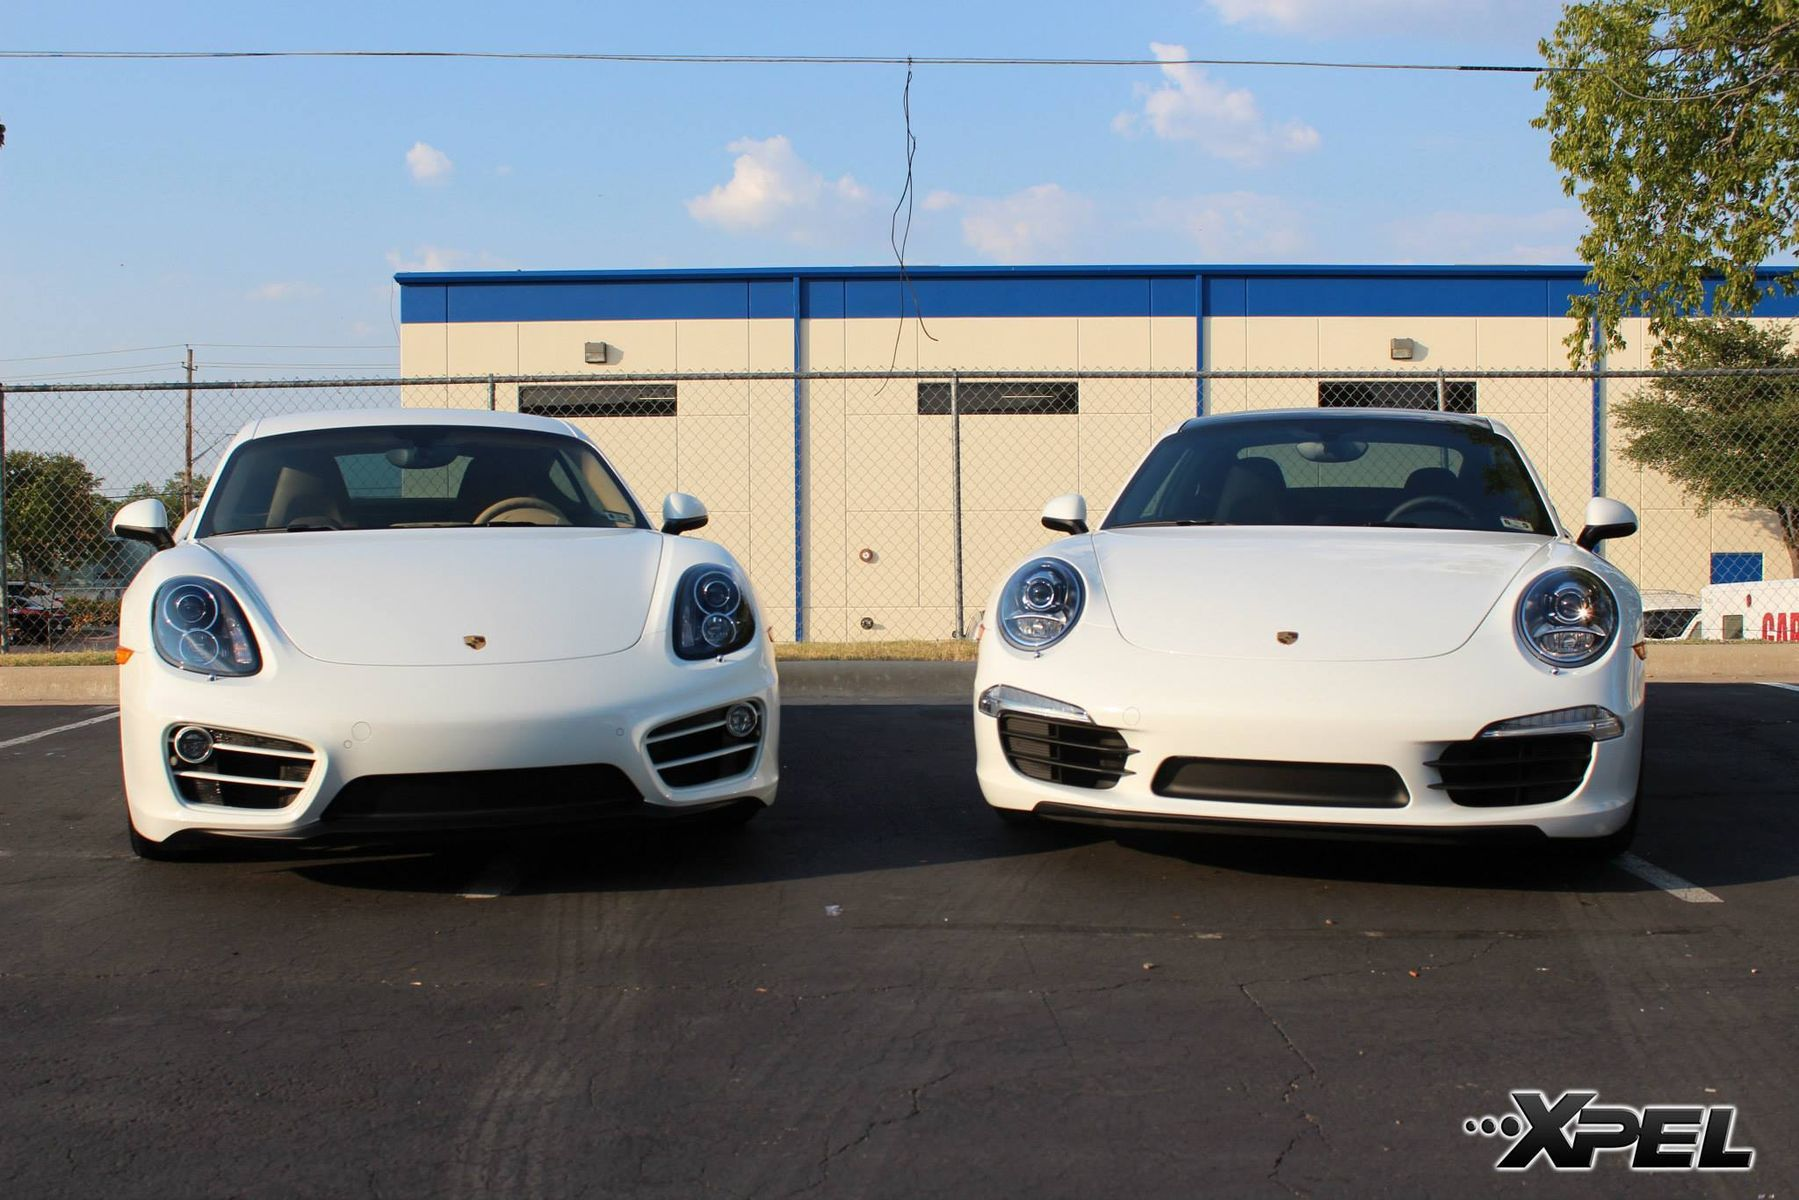 Porsche  | Which would drive? 2 Beautiful Porsche with XPEL ULTIMATE paint protection film